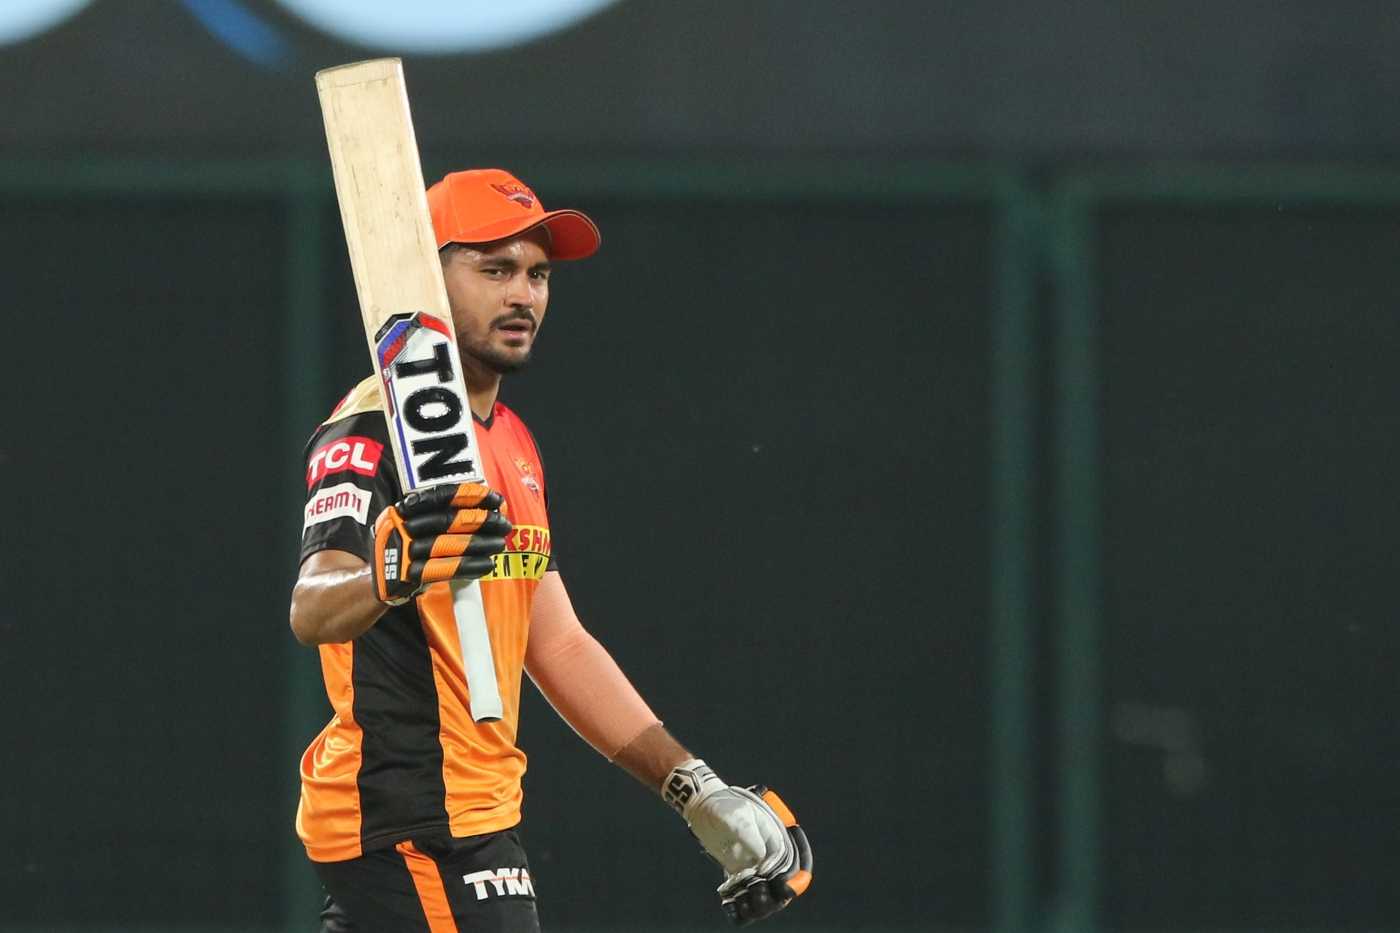 Manish Pandey played a gutsy knock of 61 runs off 46 balls against CSK | BCCI/IPL